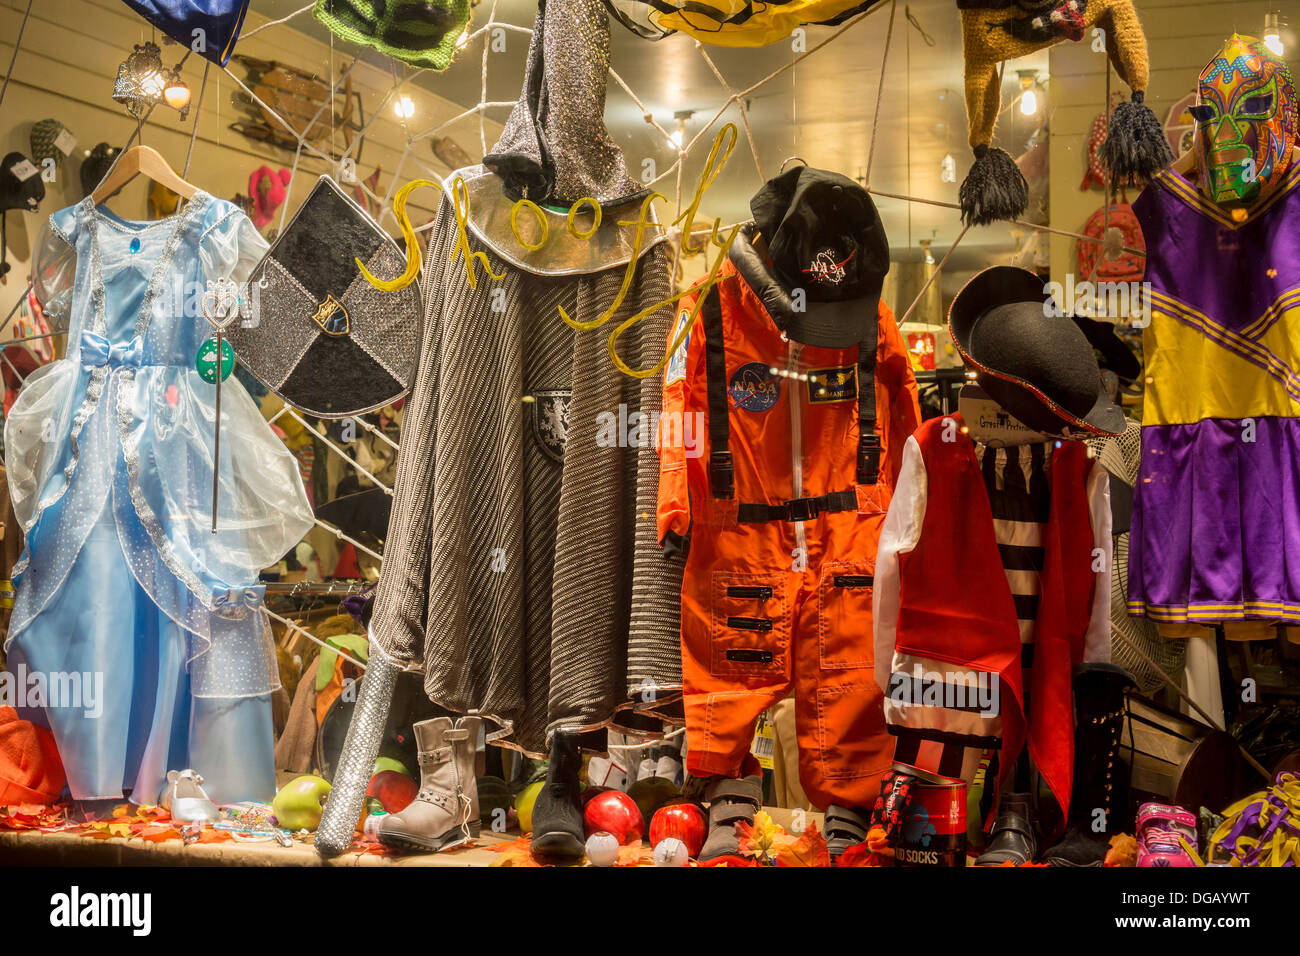 halloween costumes and merchandise in the window of a children's